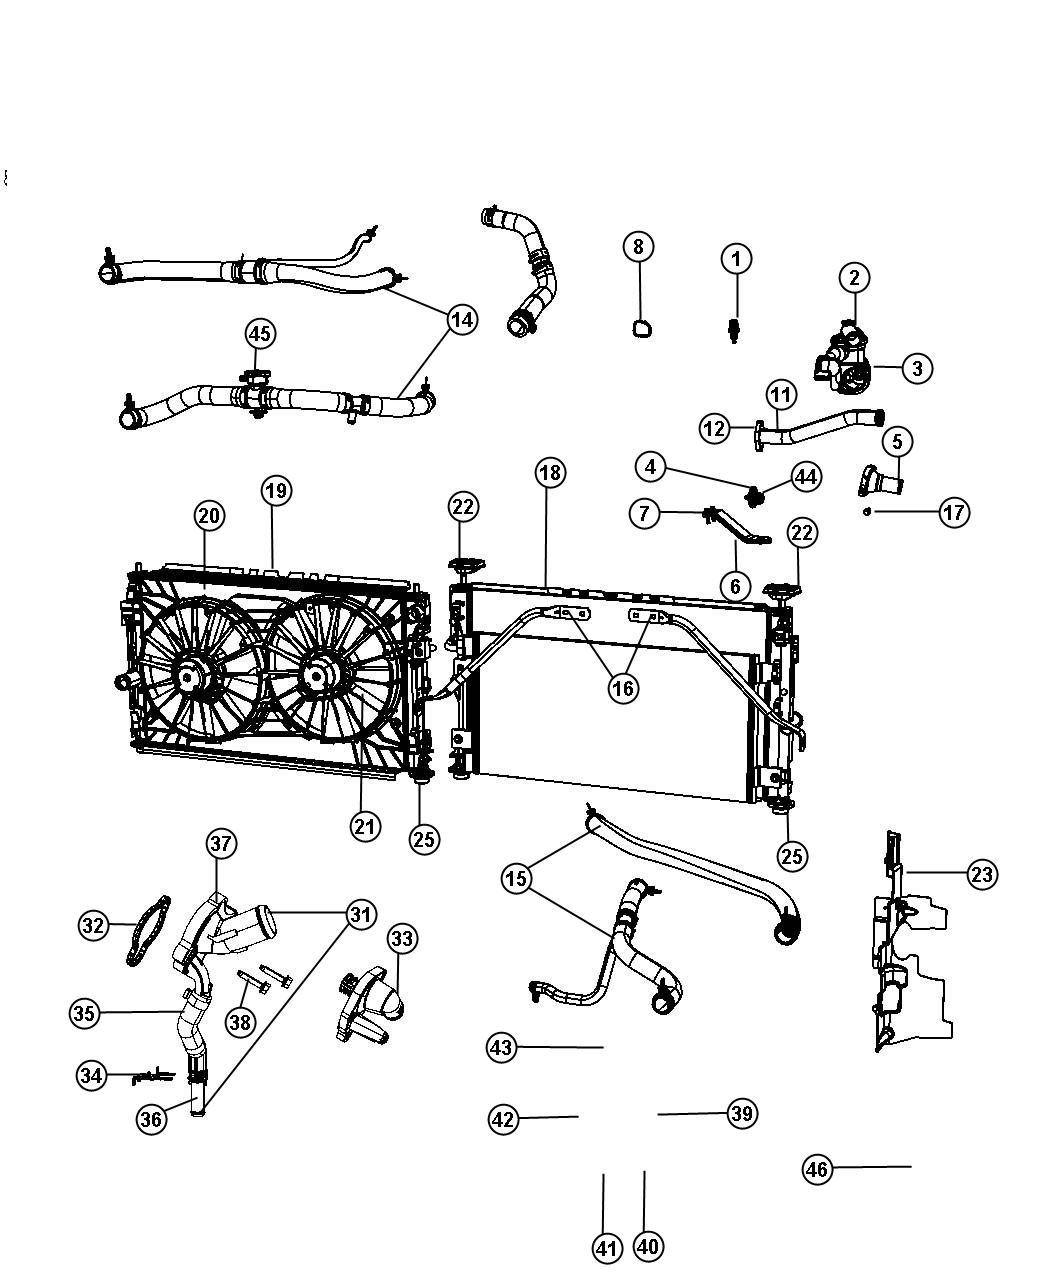 Chrysler Sebring Parts Diagram